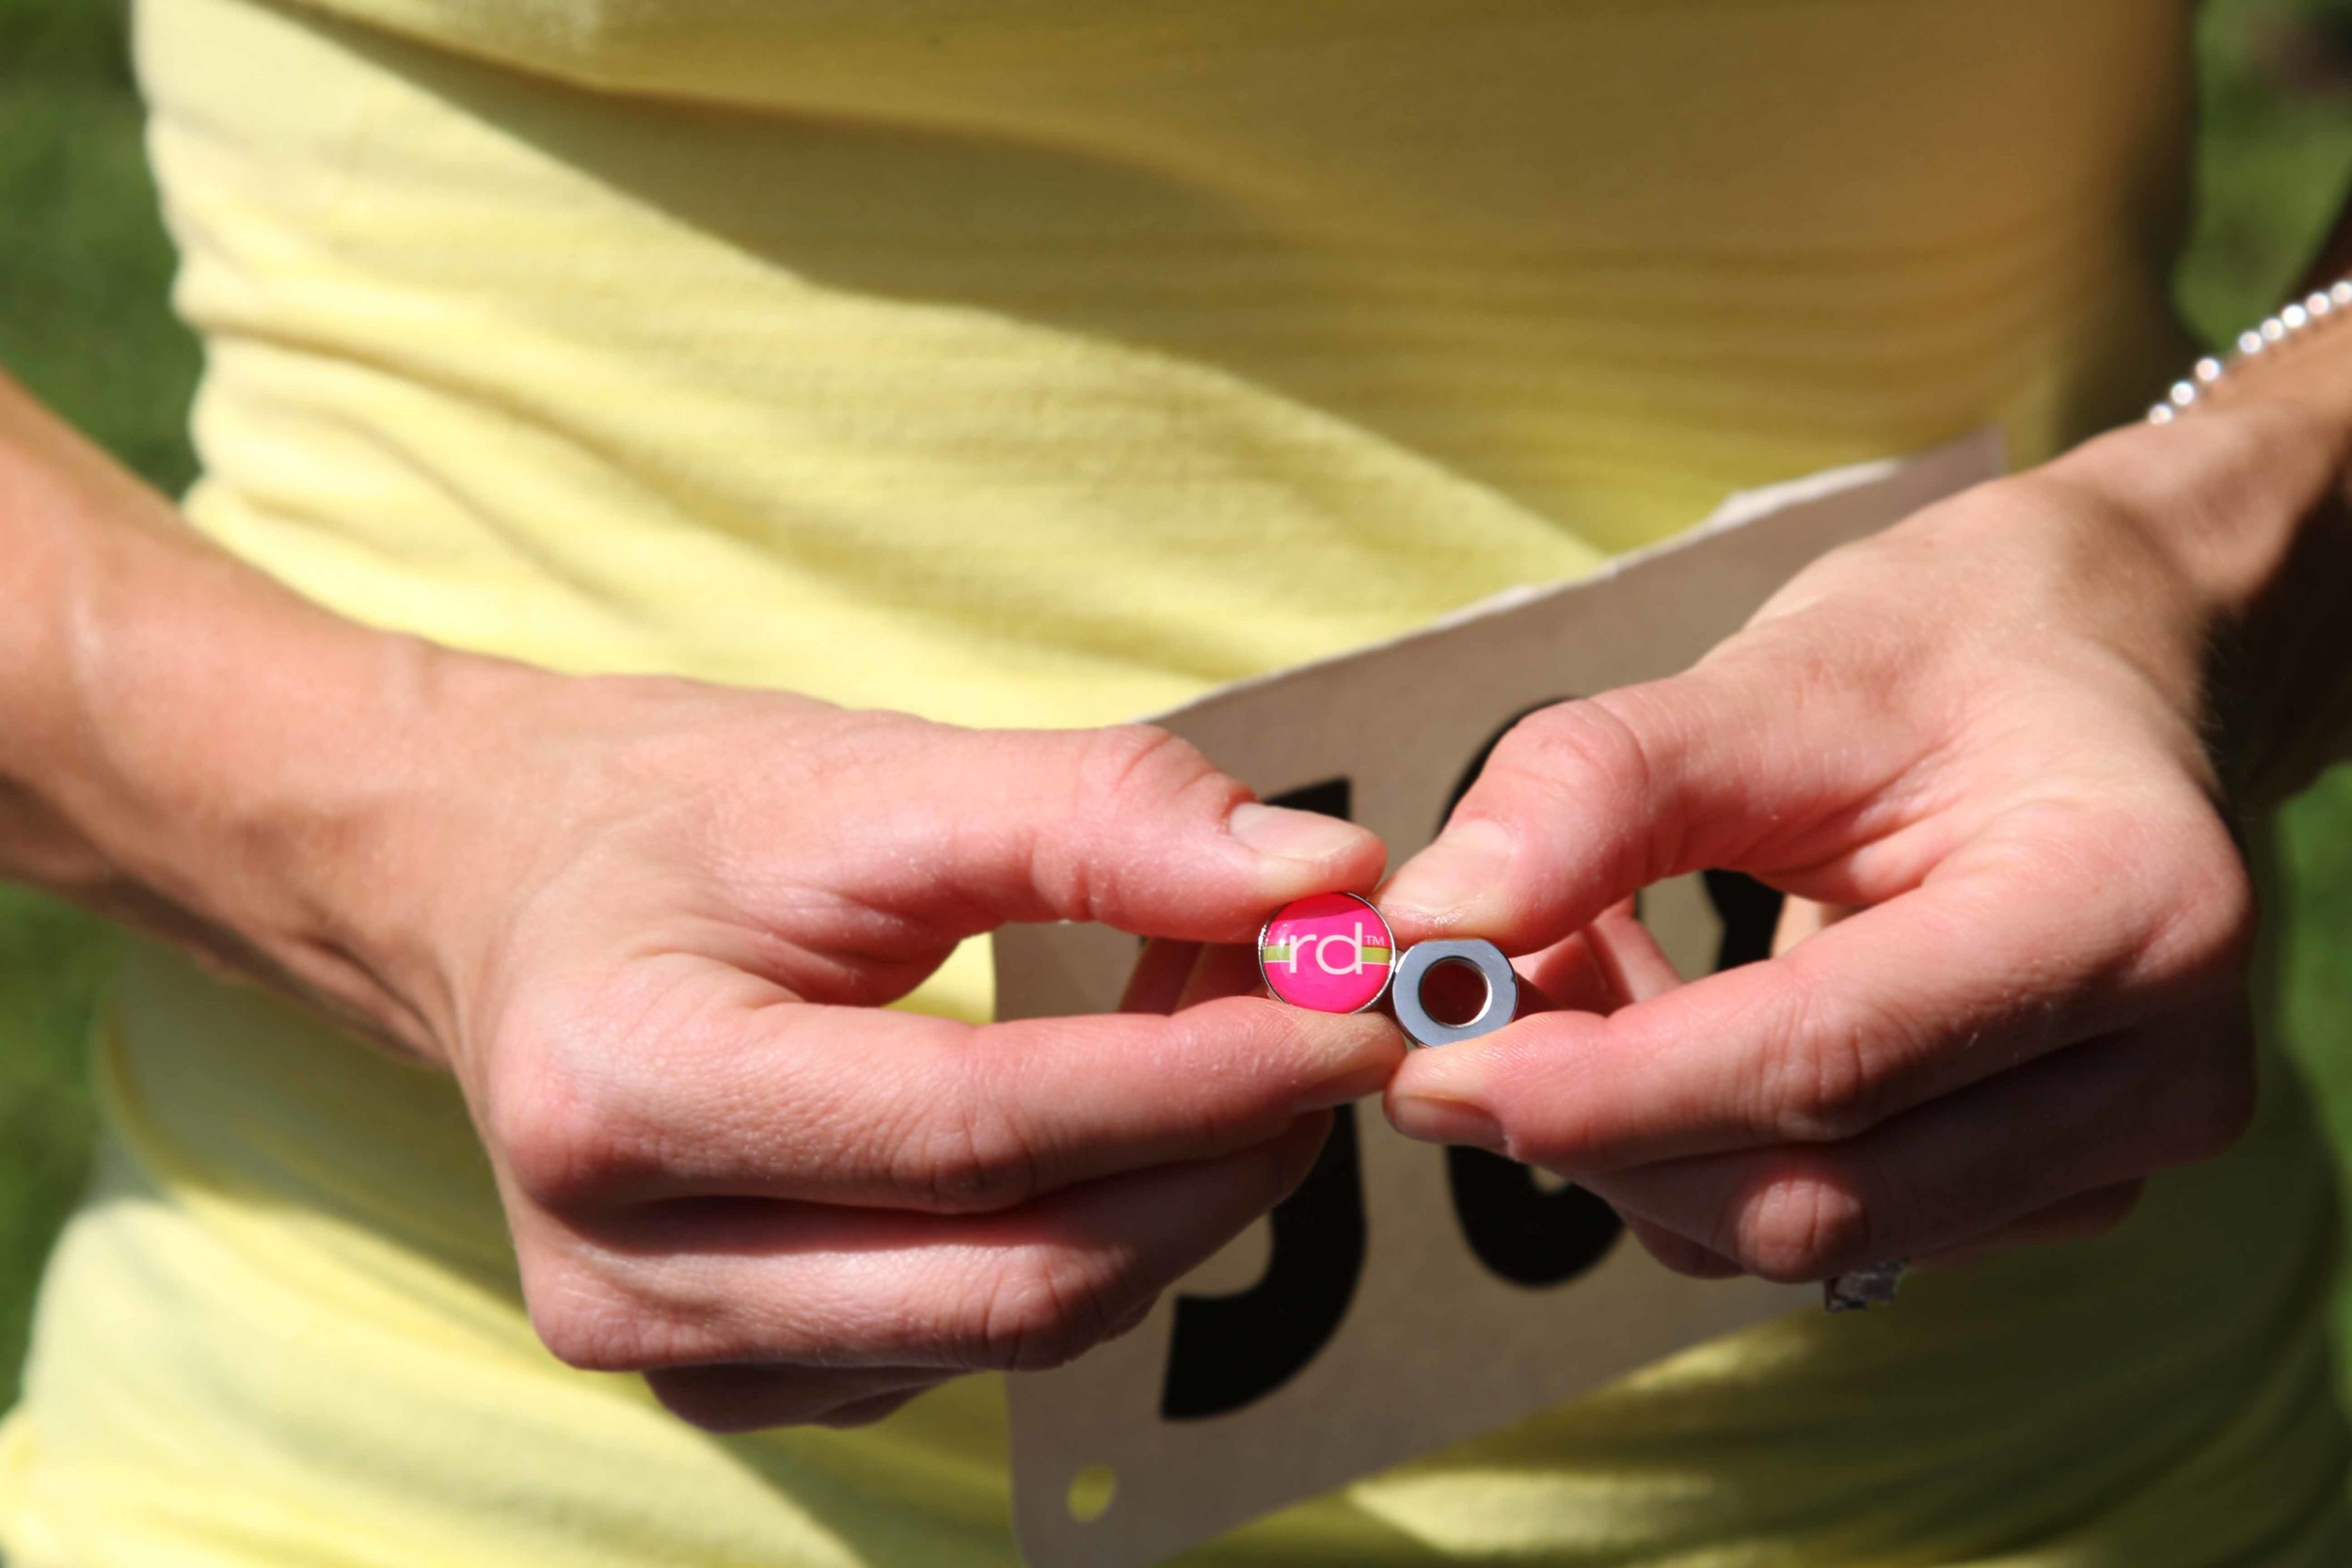 RaceDots consist of two magnets that lock together to securely hold a race number in place without damaging clothing